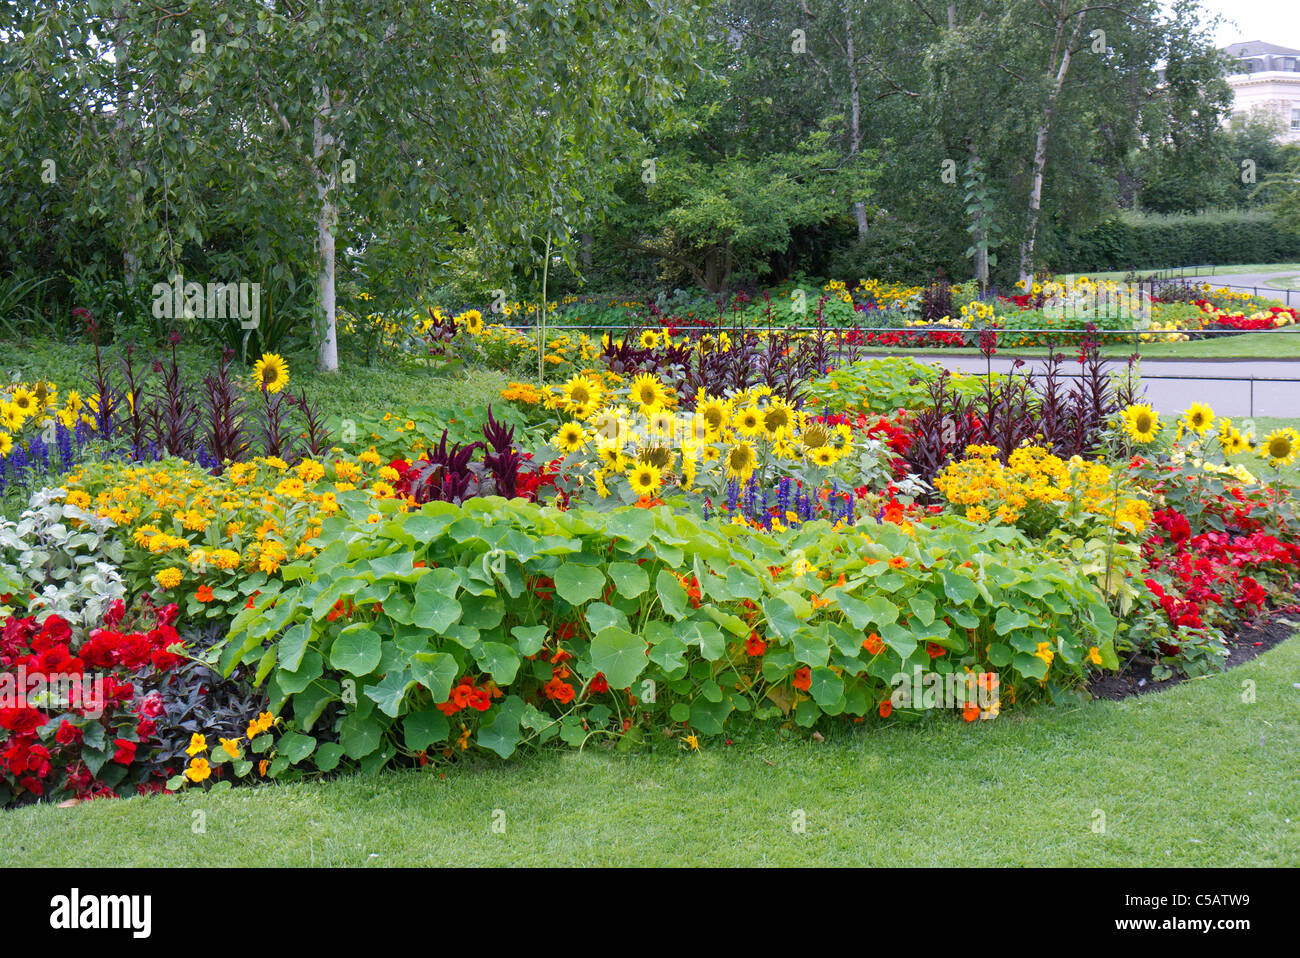 Colourful flower beds in London public gardens - Stock Image